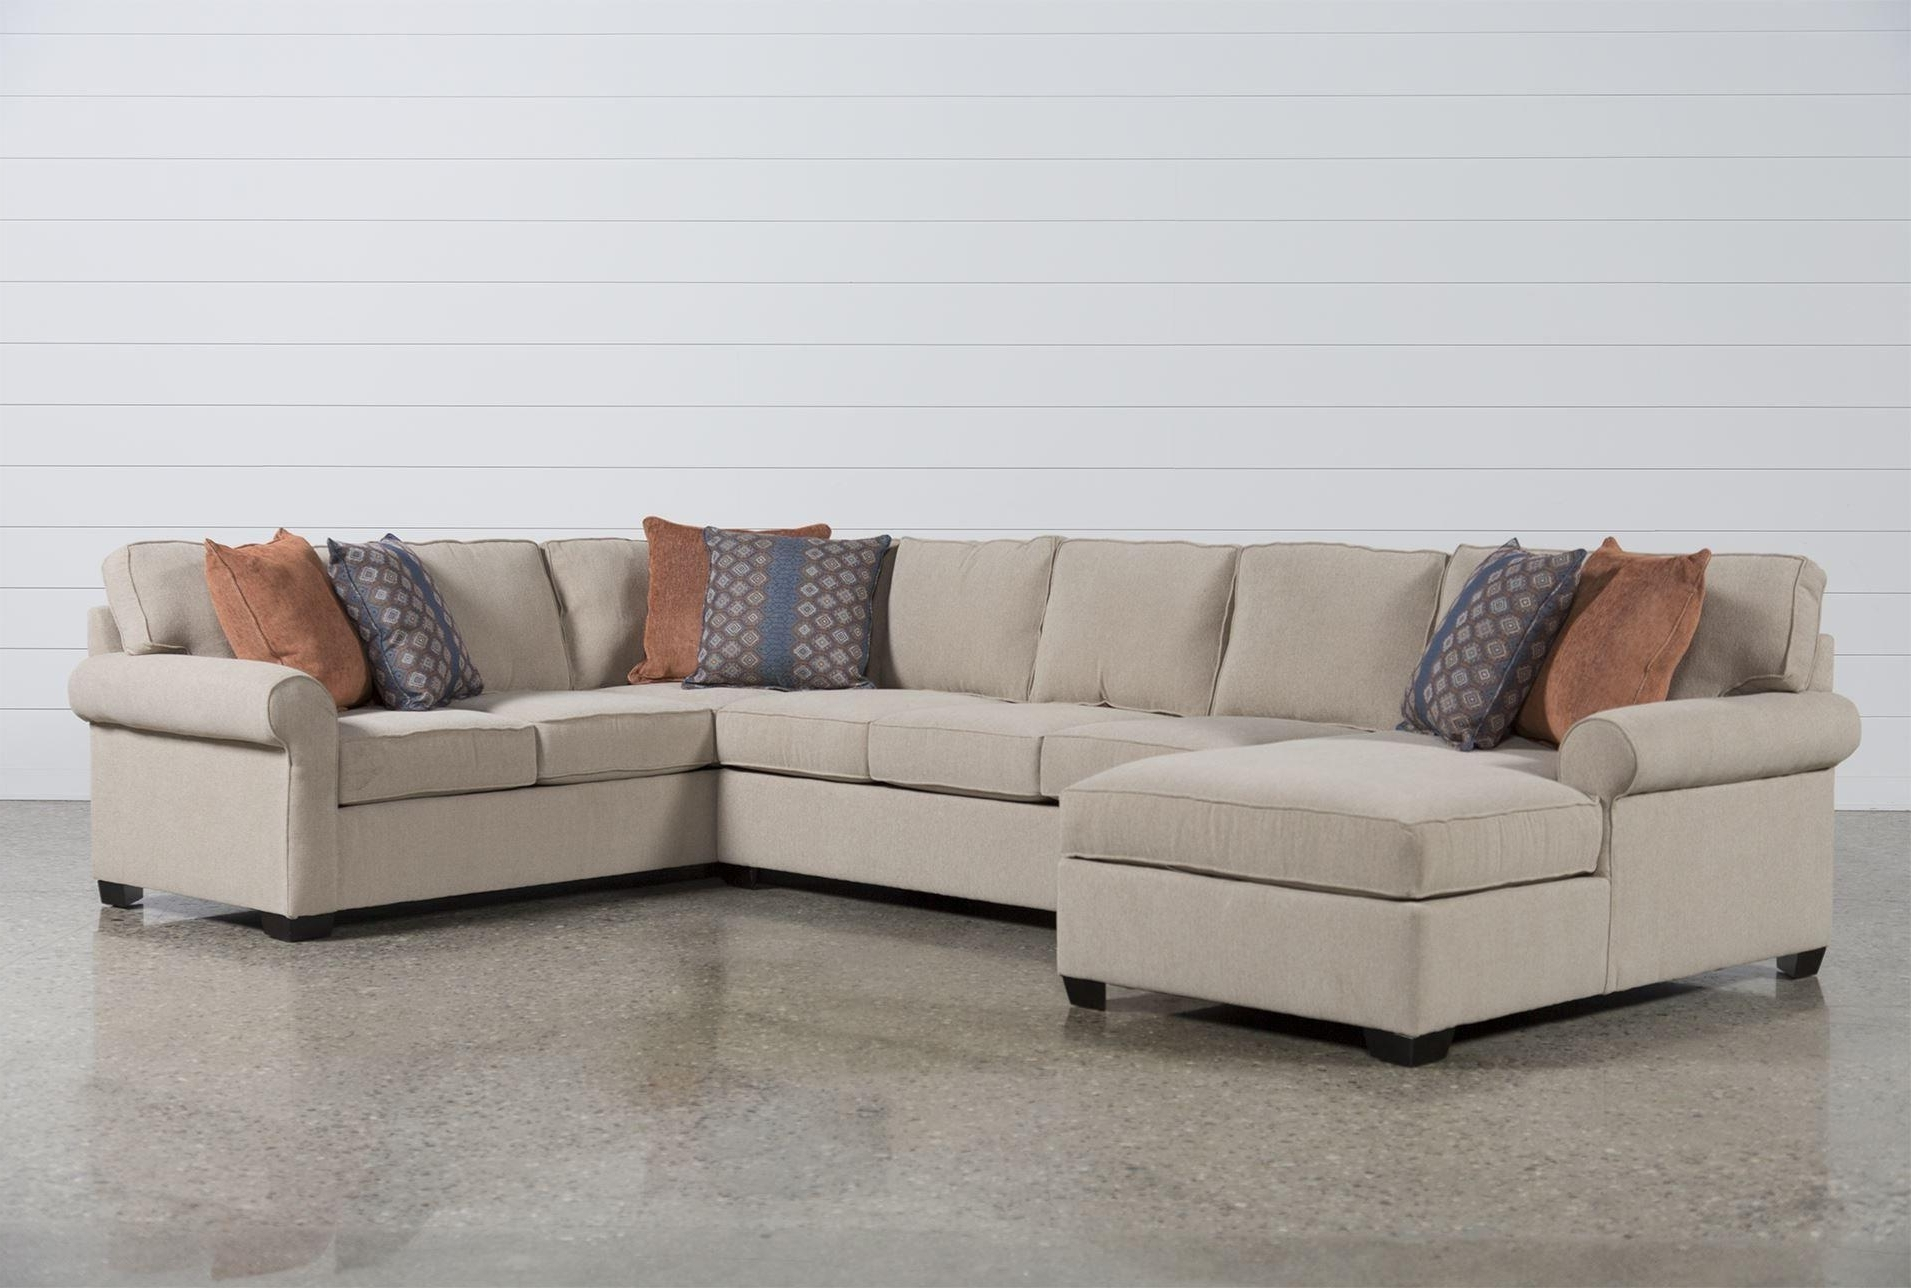 20 Best Ideas Of Target Sectional Sofas